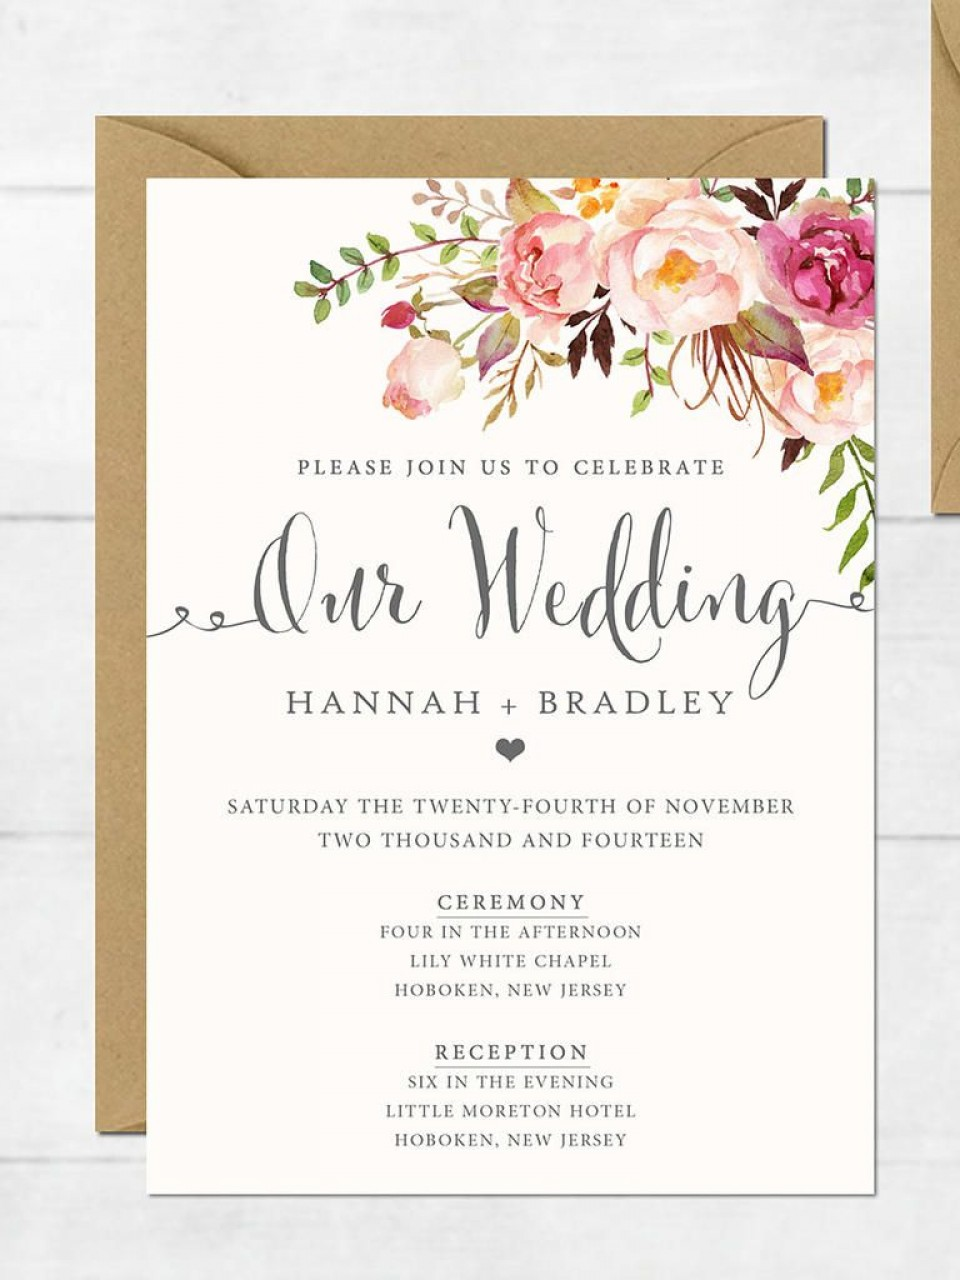 002 Unforgettable Printable Wedding Invitation Template High Definition  Free For Microsoft Word Vintage960